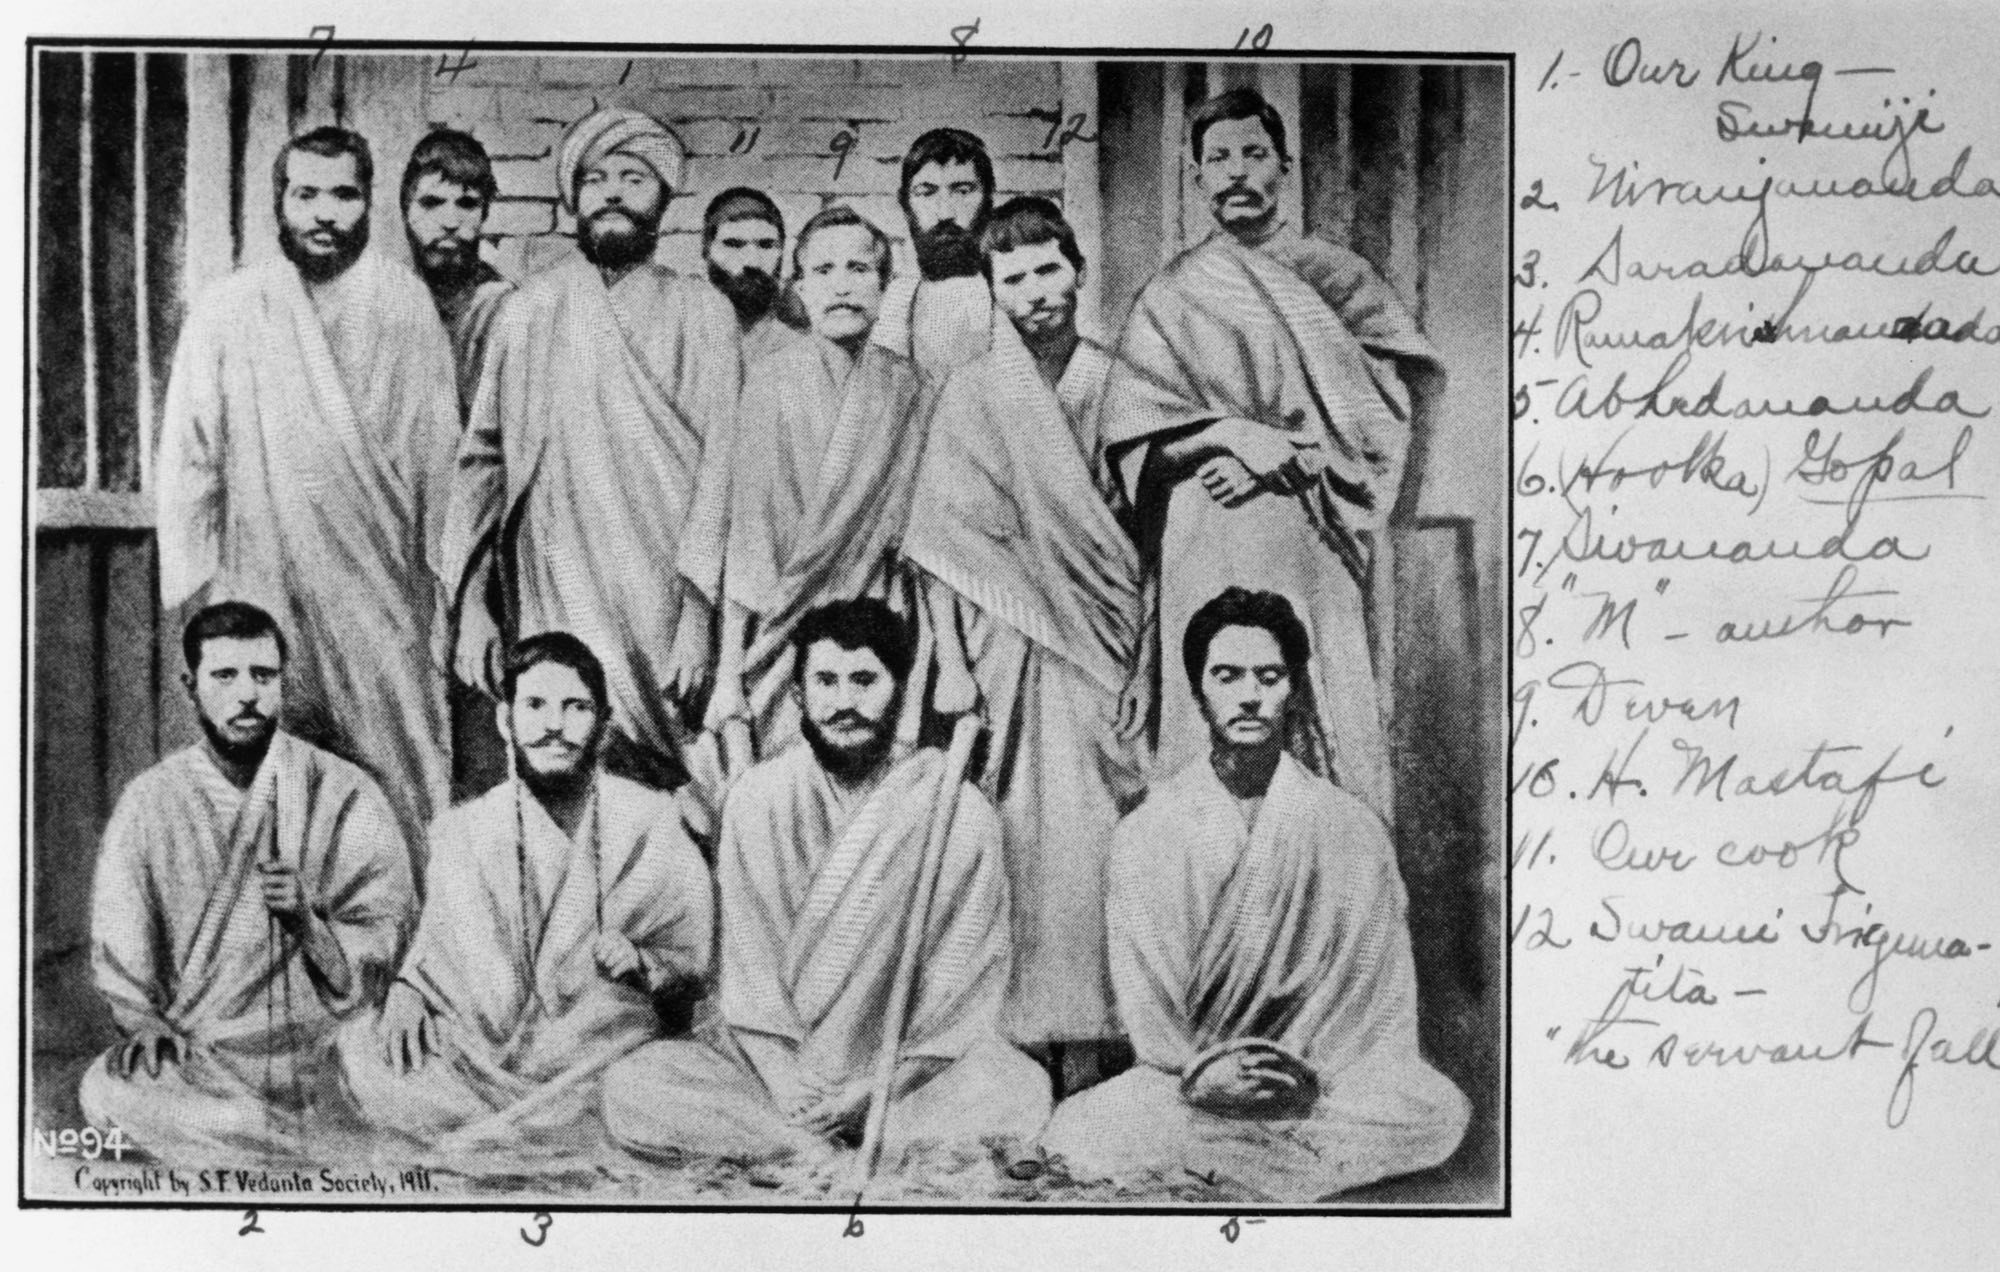 "(#6a) Swami Trigunatitananda's handwriting on the right: 1. Our King—Swamiji 2. Niranjanananda 3. Saradananda 4. Ramakrishnananda 5. Abhedananda 6. (Hootka) Gopal 7. Sivananda 8. ""M""—author 9. Deven 10. H. Mastafi 11. our cook 12. Swami Trigunatita—""the servant of all"""